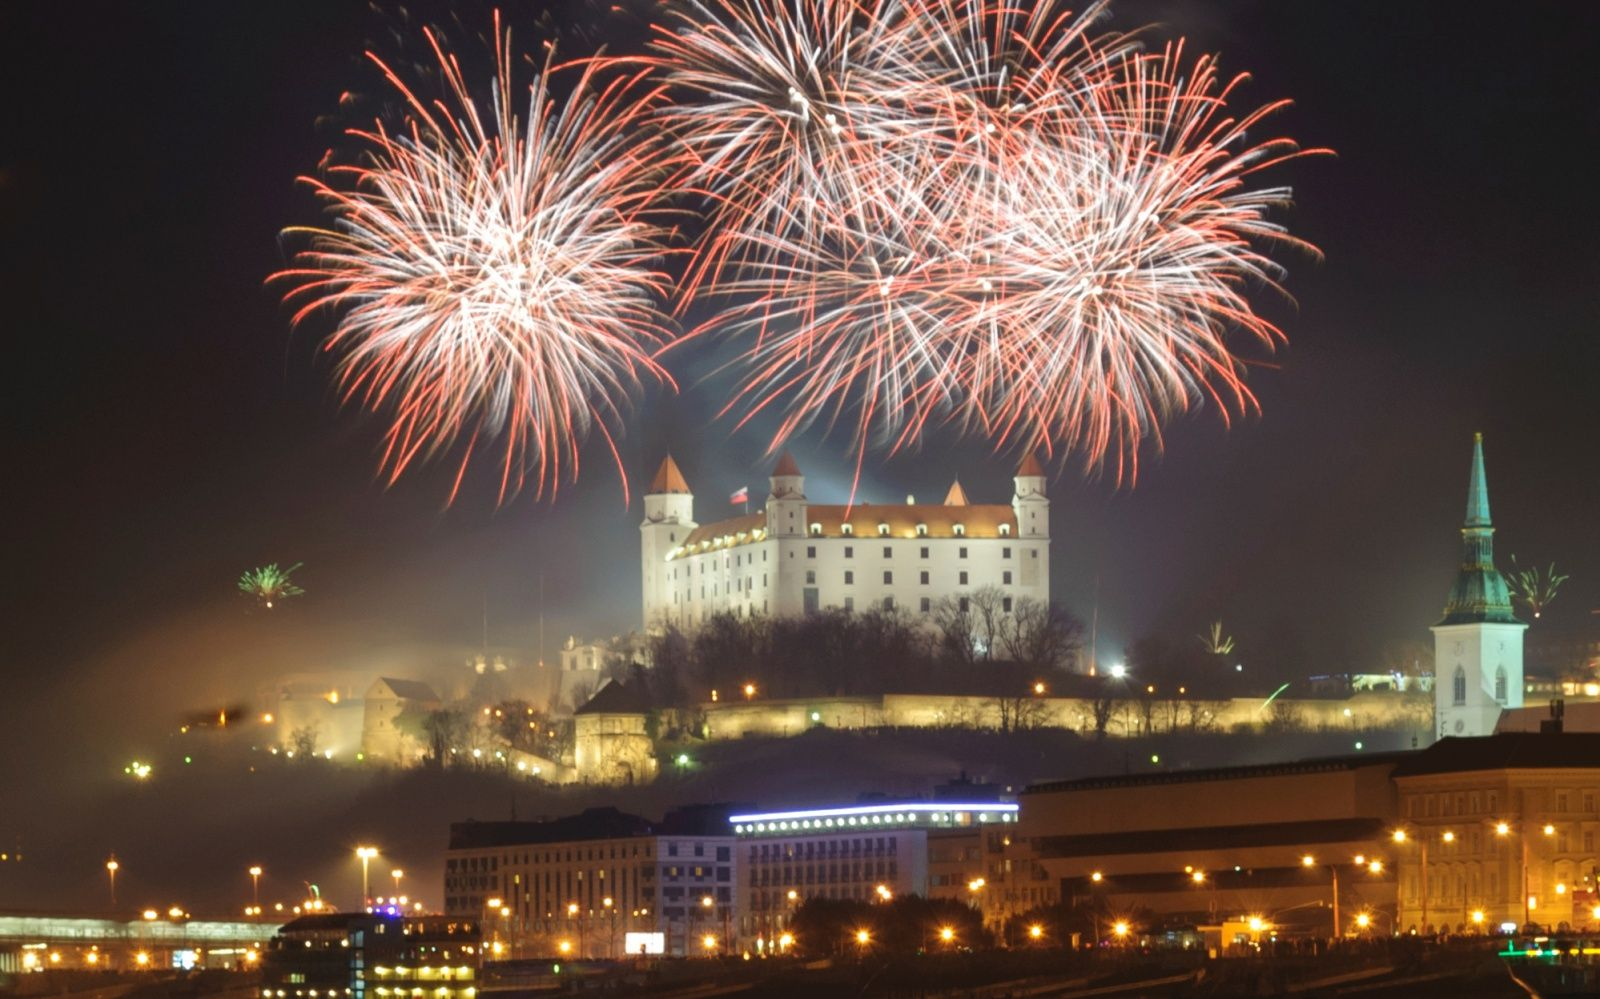 The Best Places to Spend New Year's Eve The good place